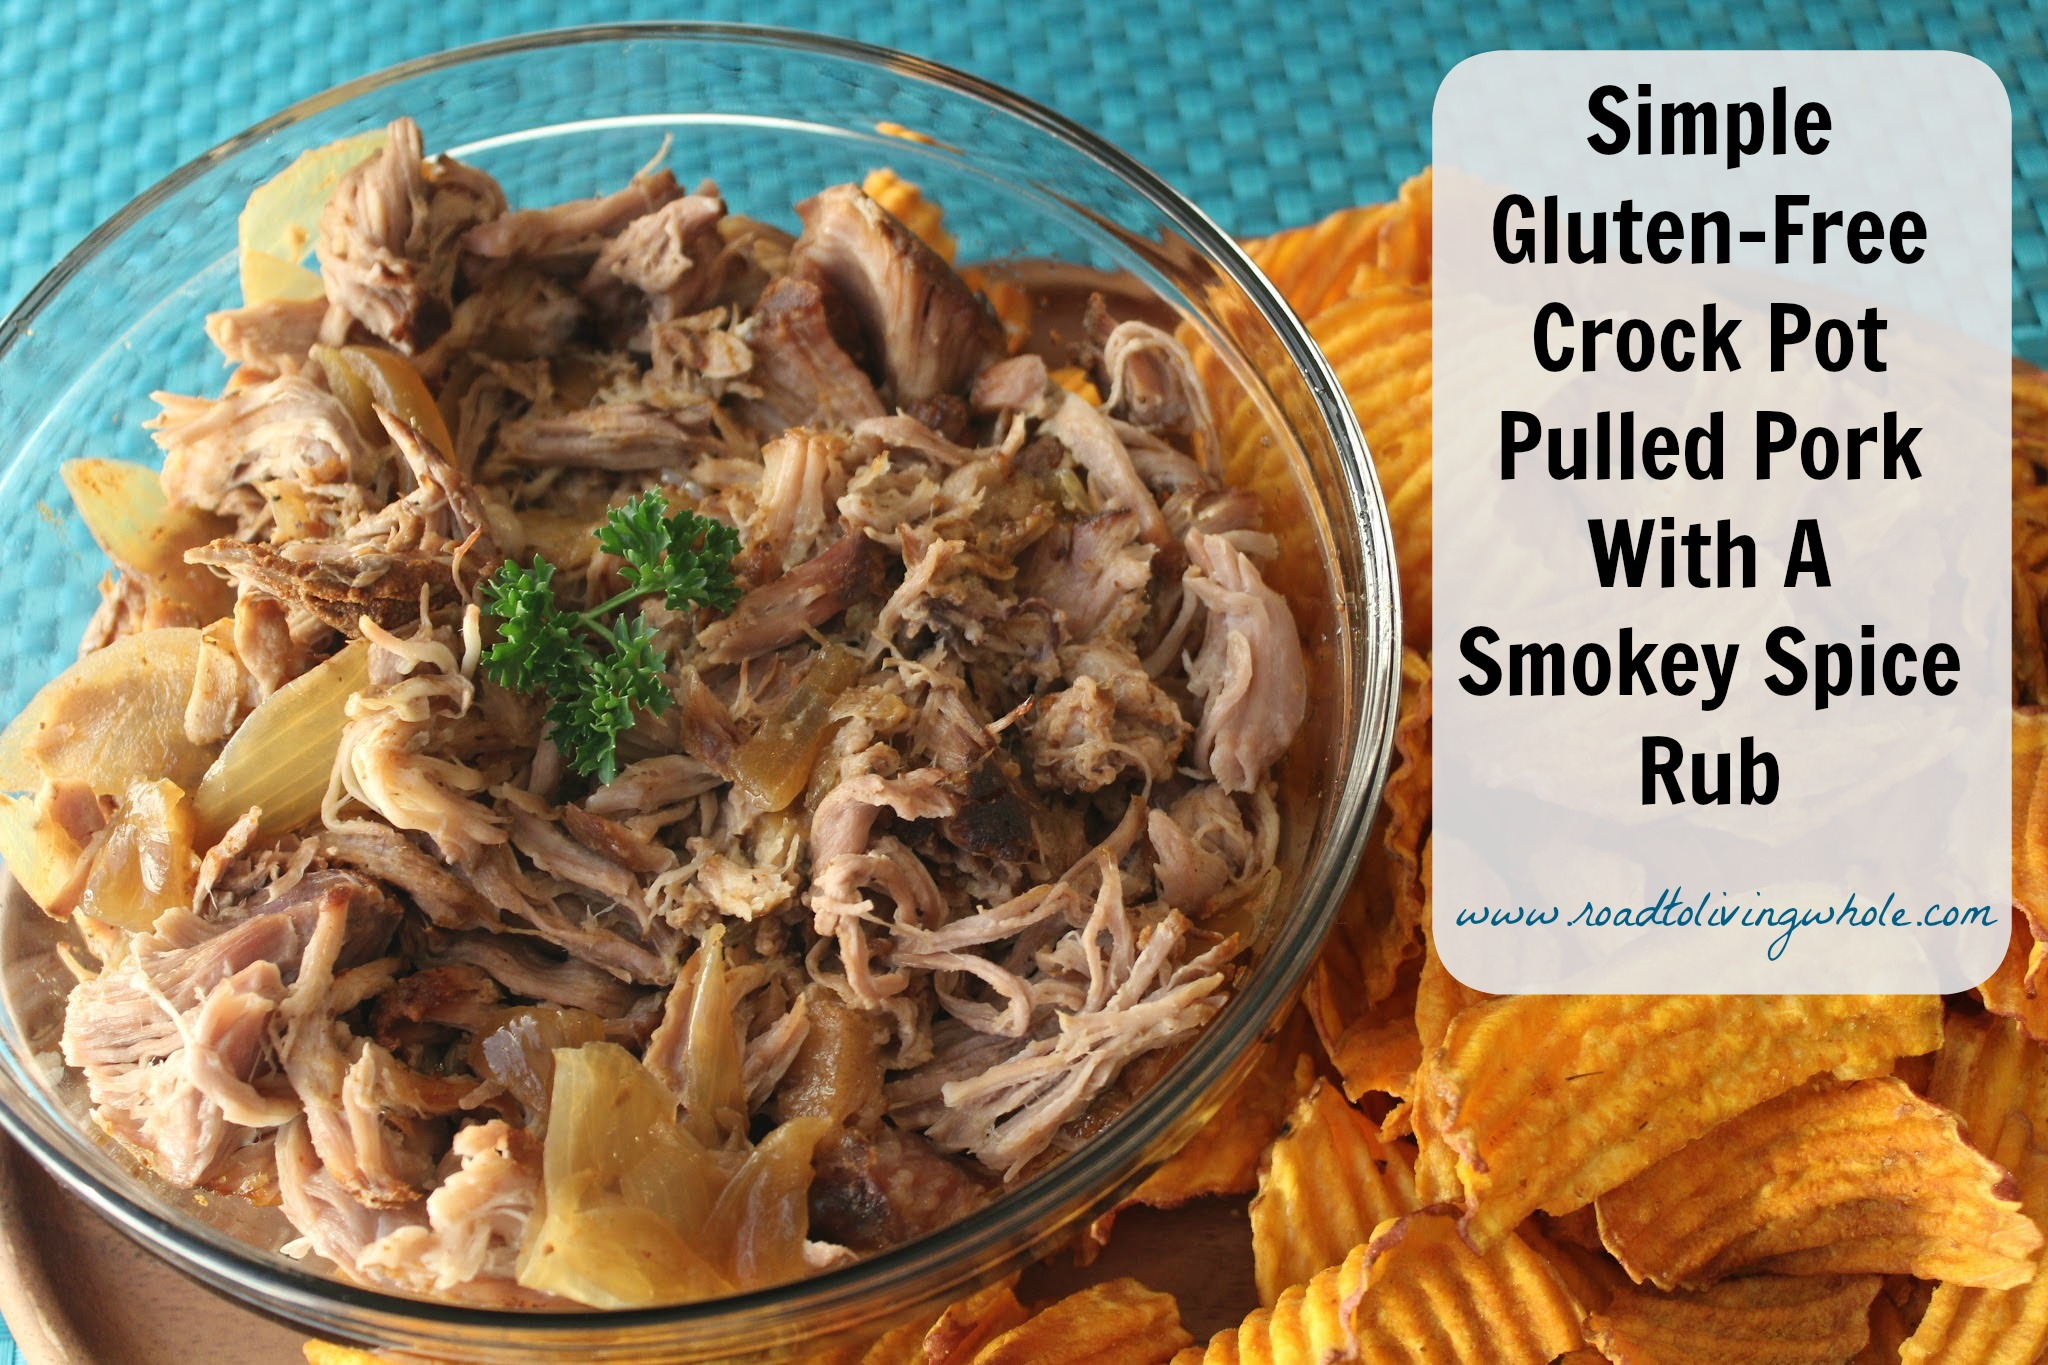 Simple Crock Pot Pulled Pork - Road to Living Whole